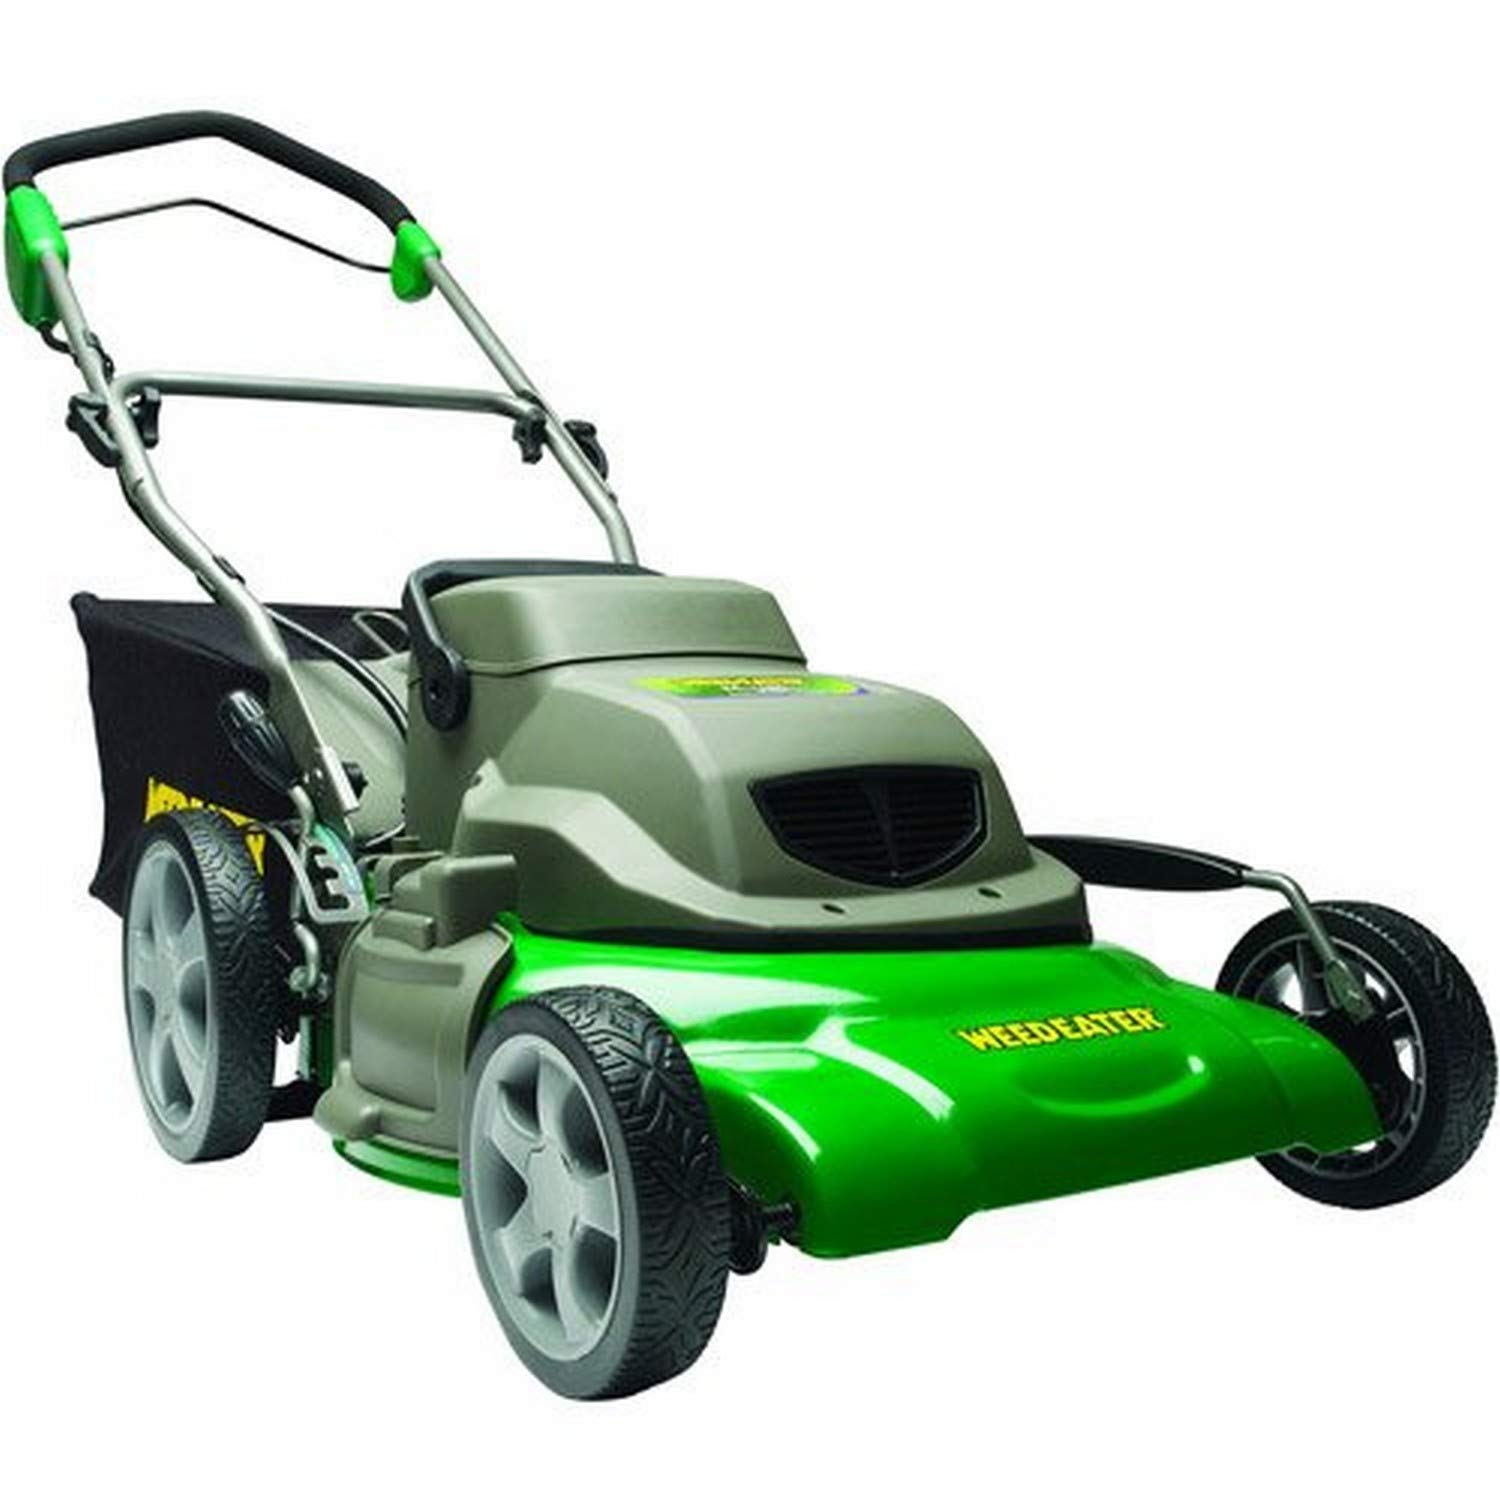 Weed Eater 961320058 Cordless Electric Lawn Mower